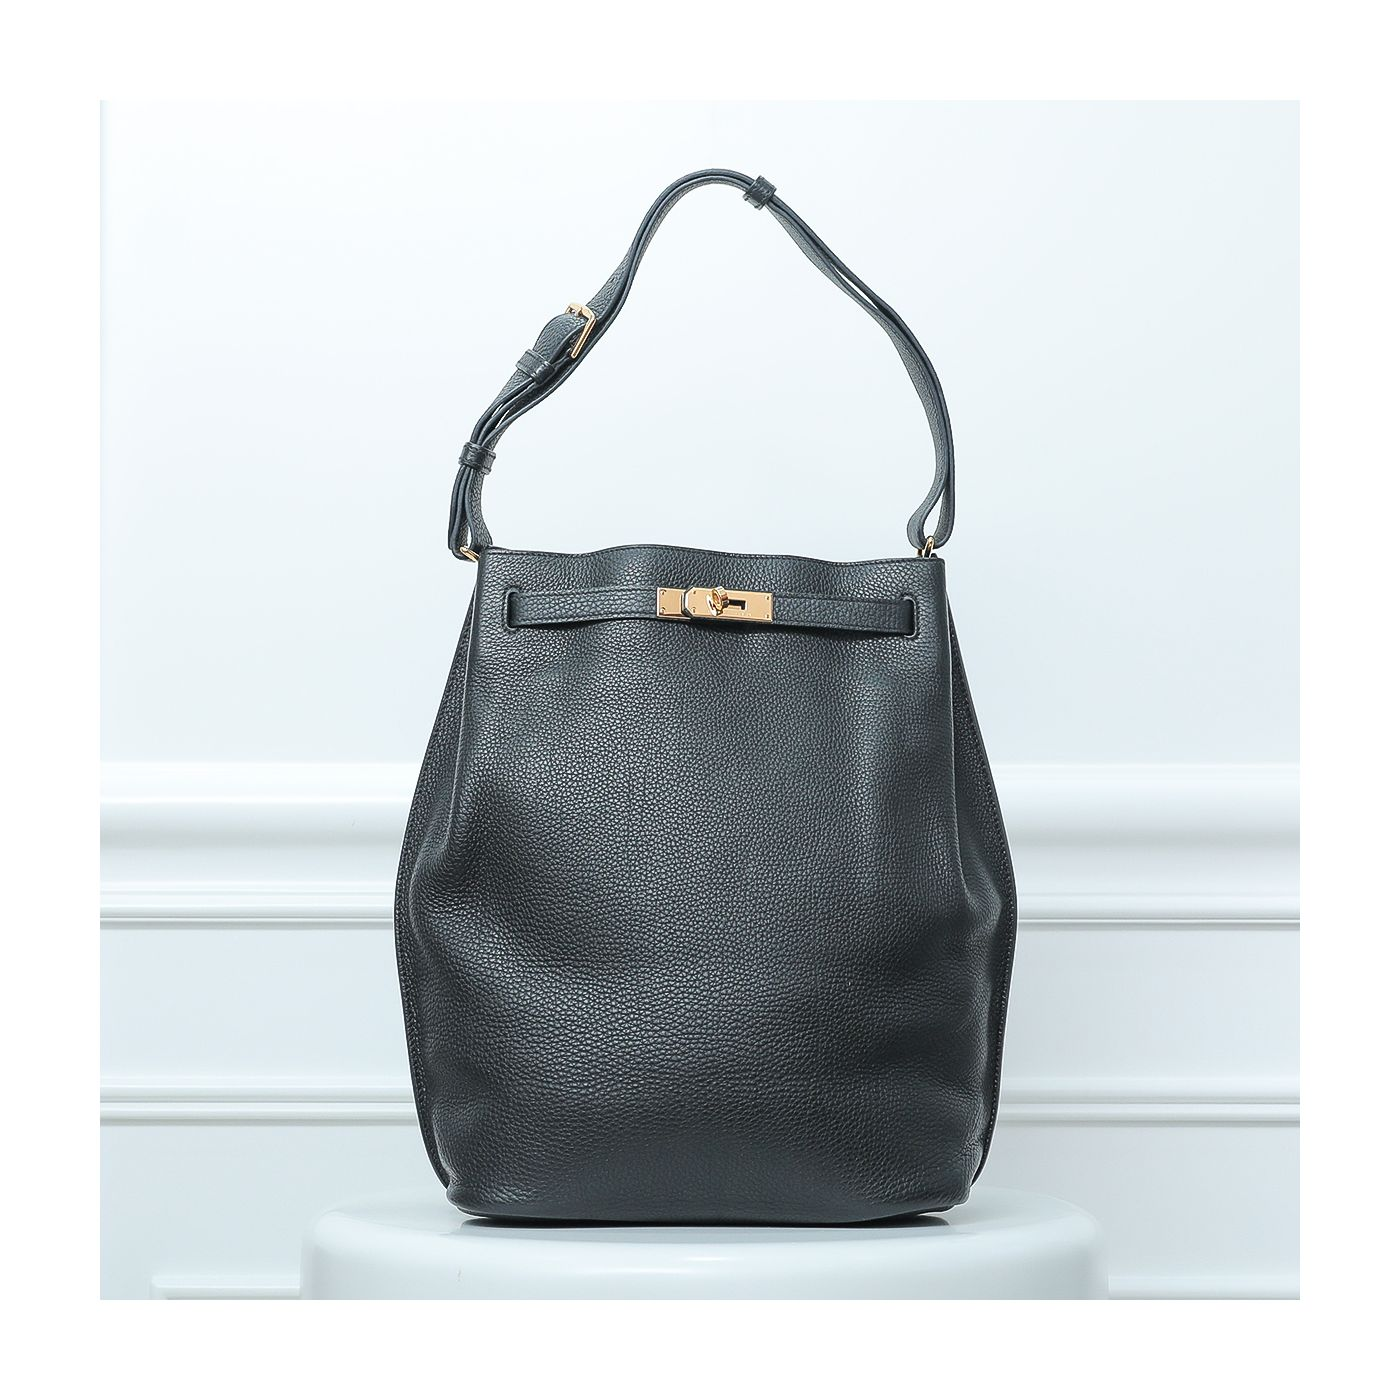 Hermes Noir So Kelly 26